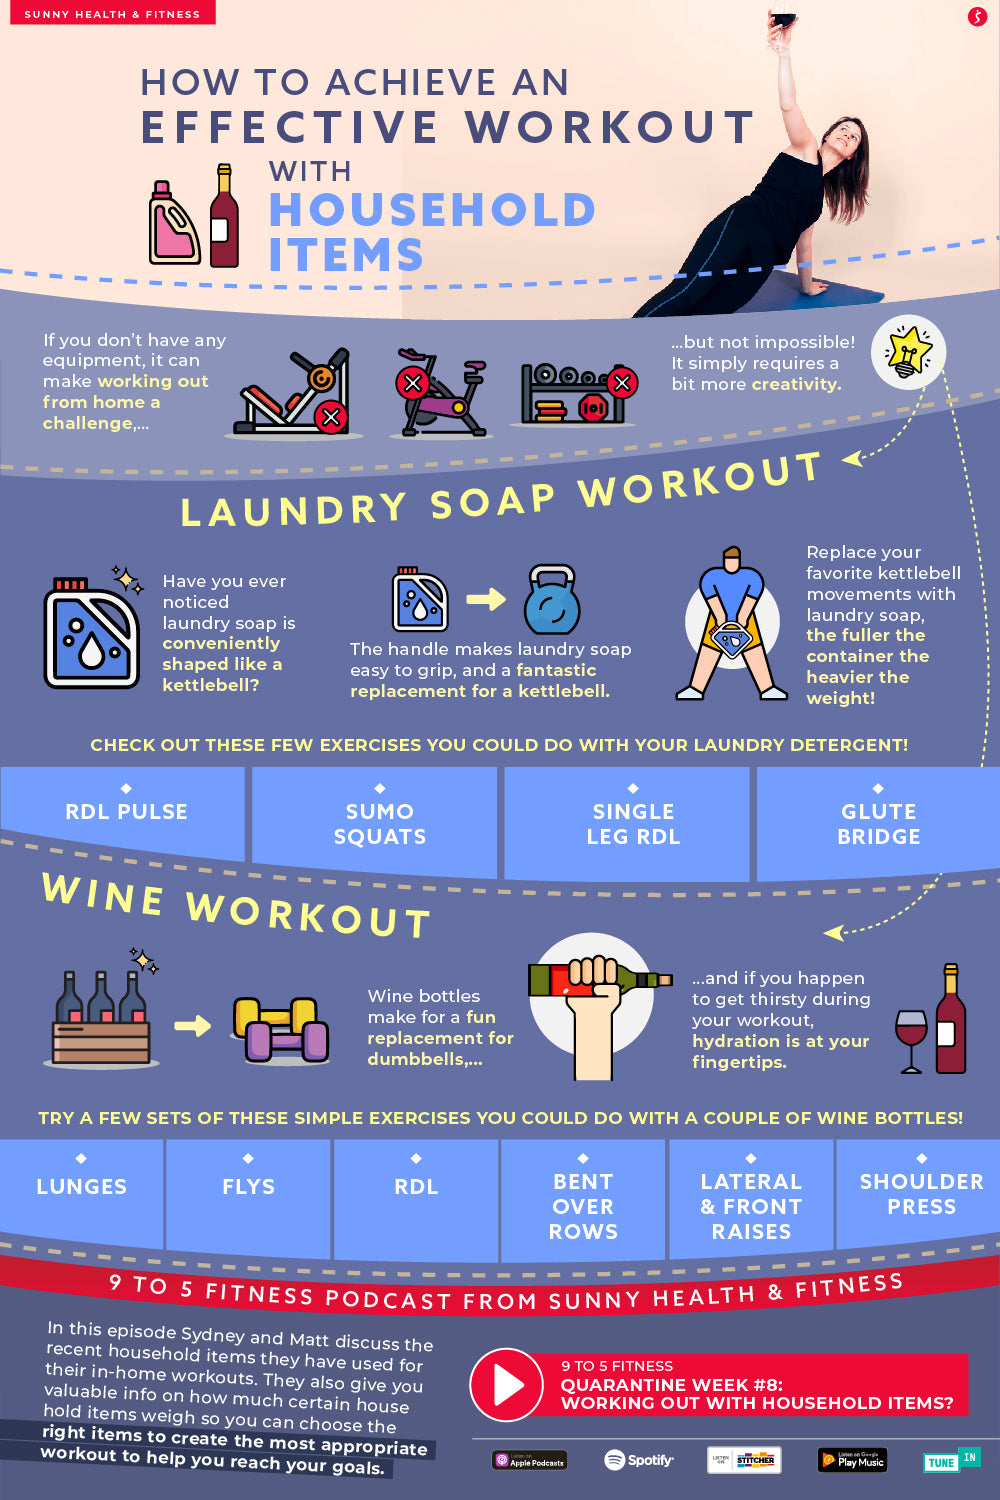 How to Achieve an Effective Workout with Household Items Infographic